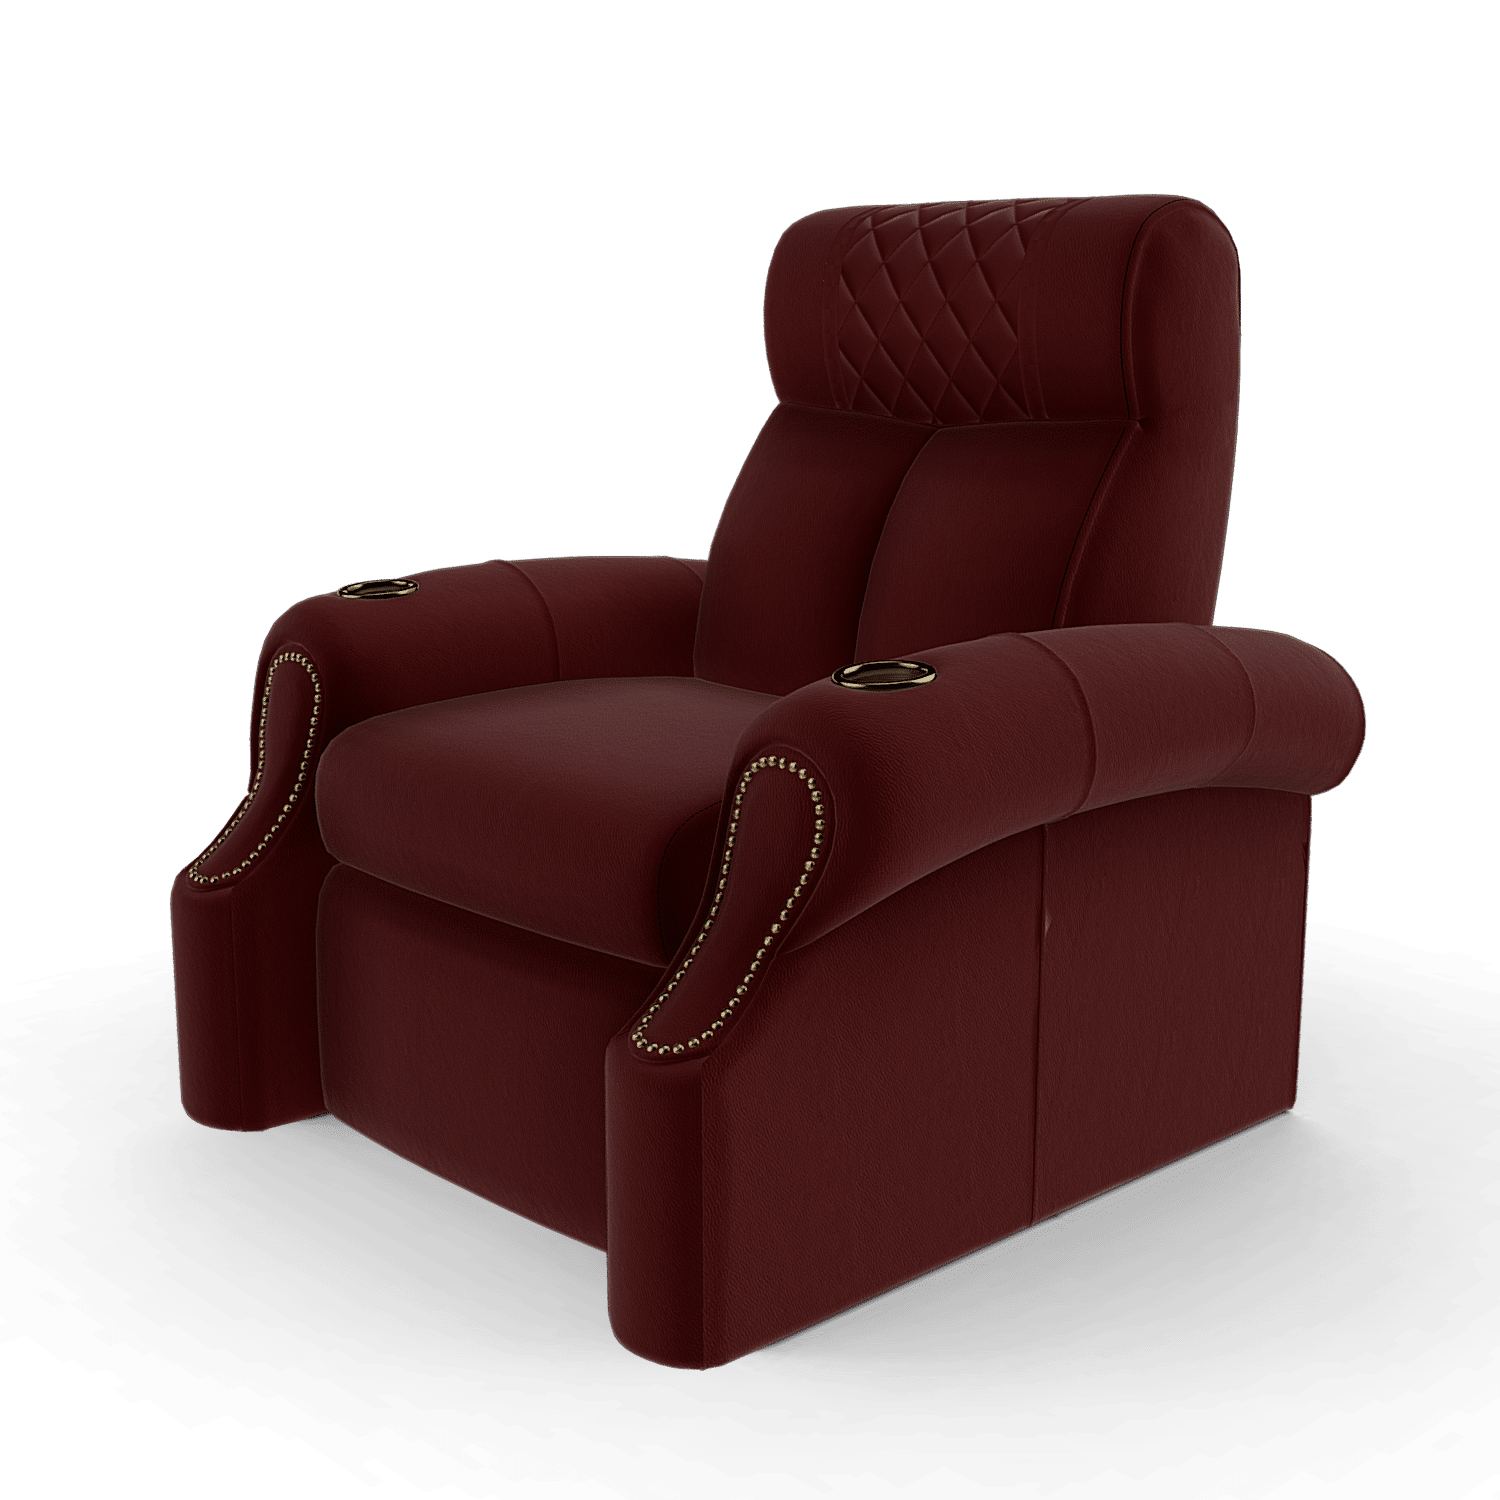 home_cinema_chairs red l9